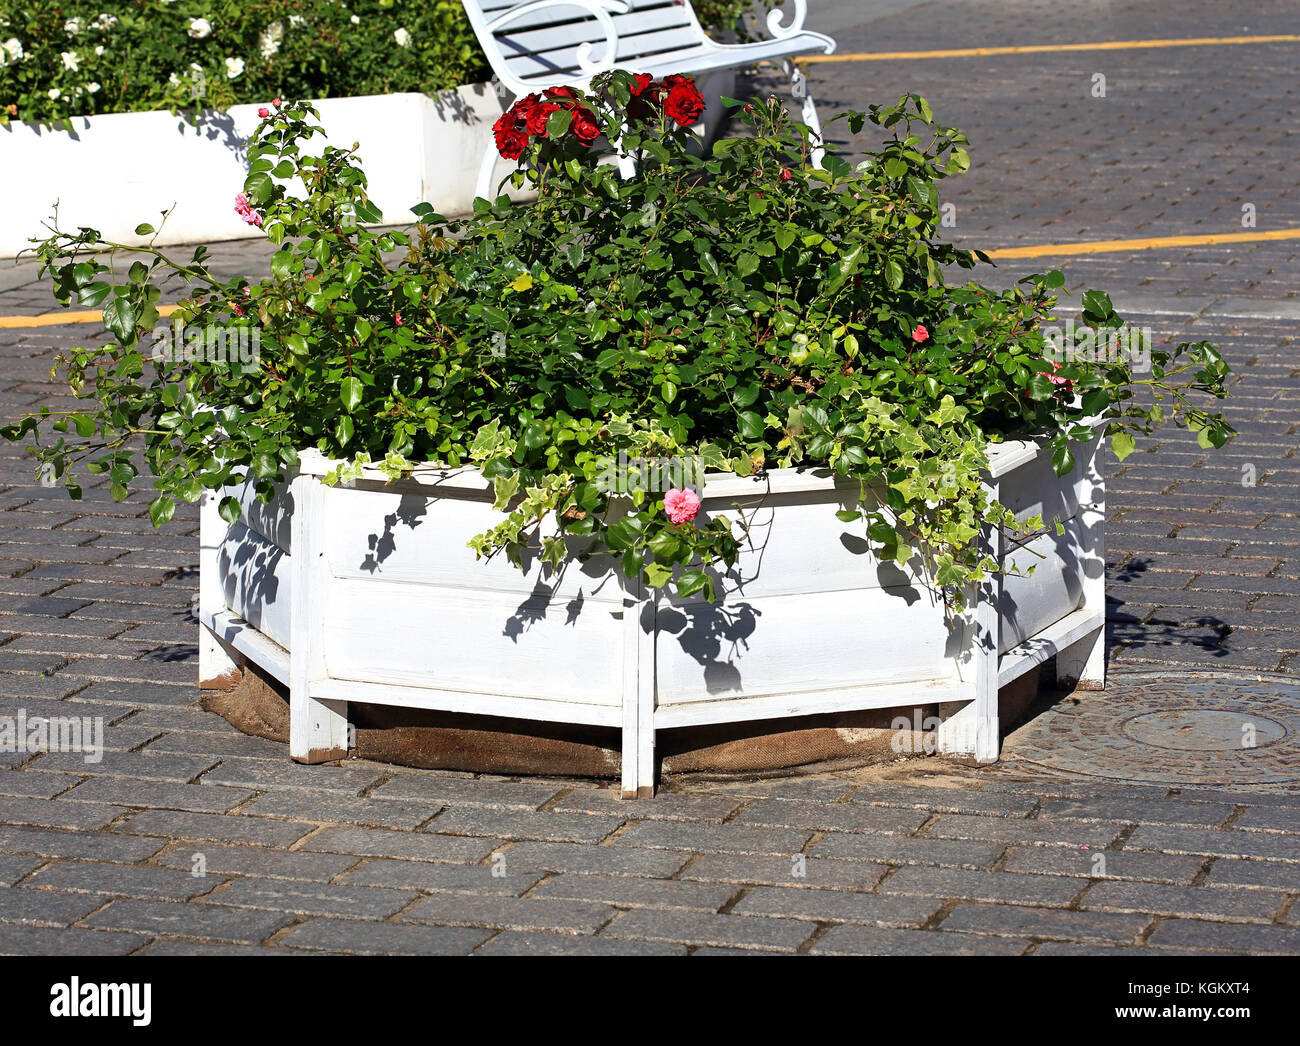 Wooden base with small-leaved ornamental shrubs to decorate squares - Stock Image